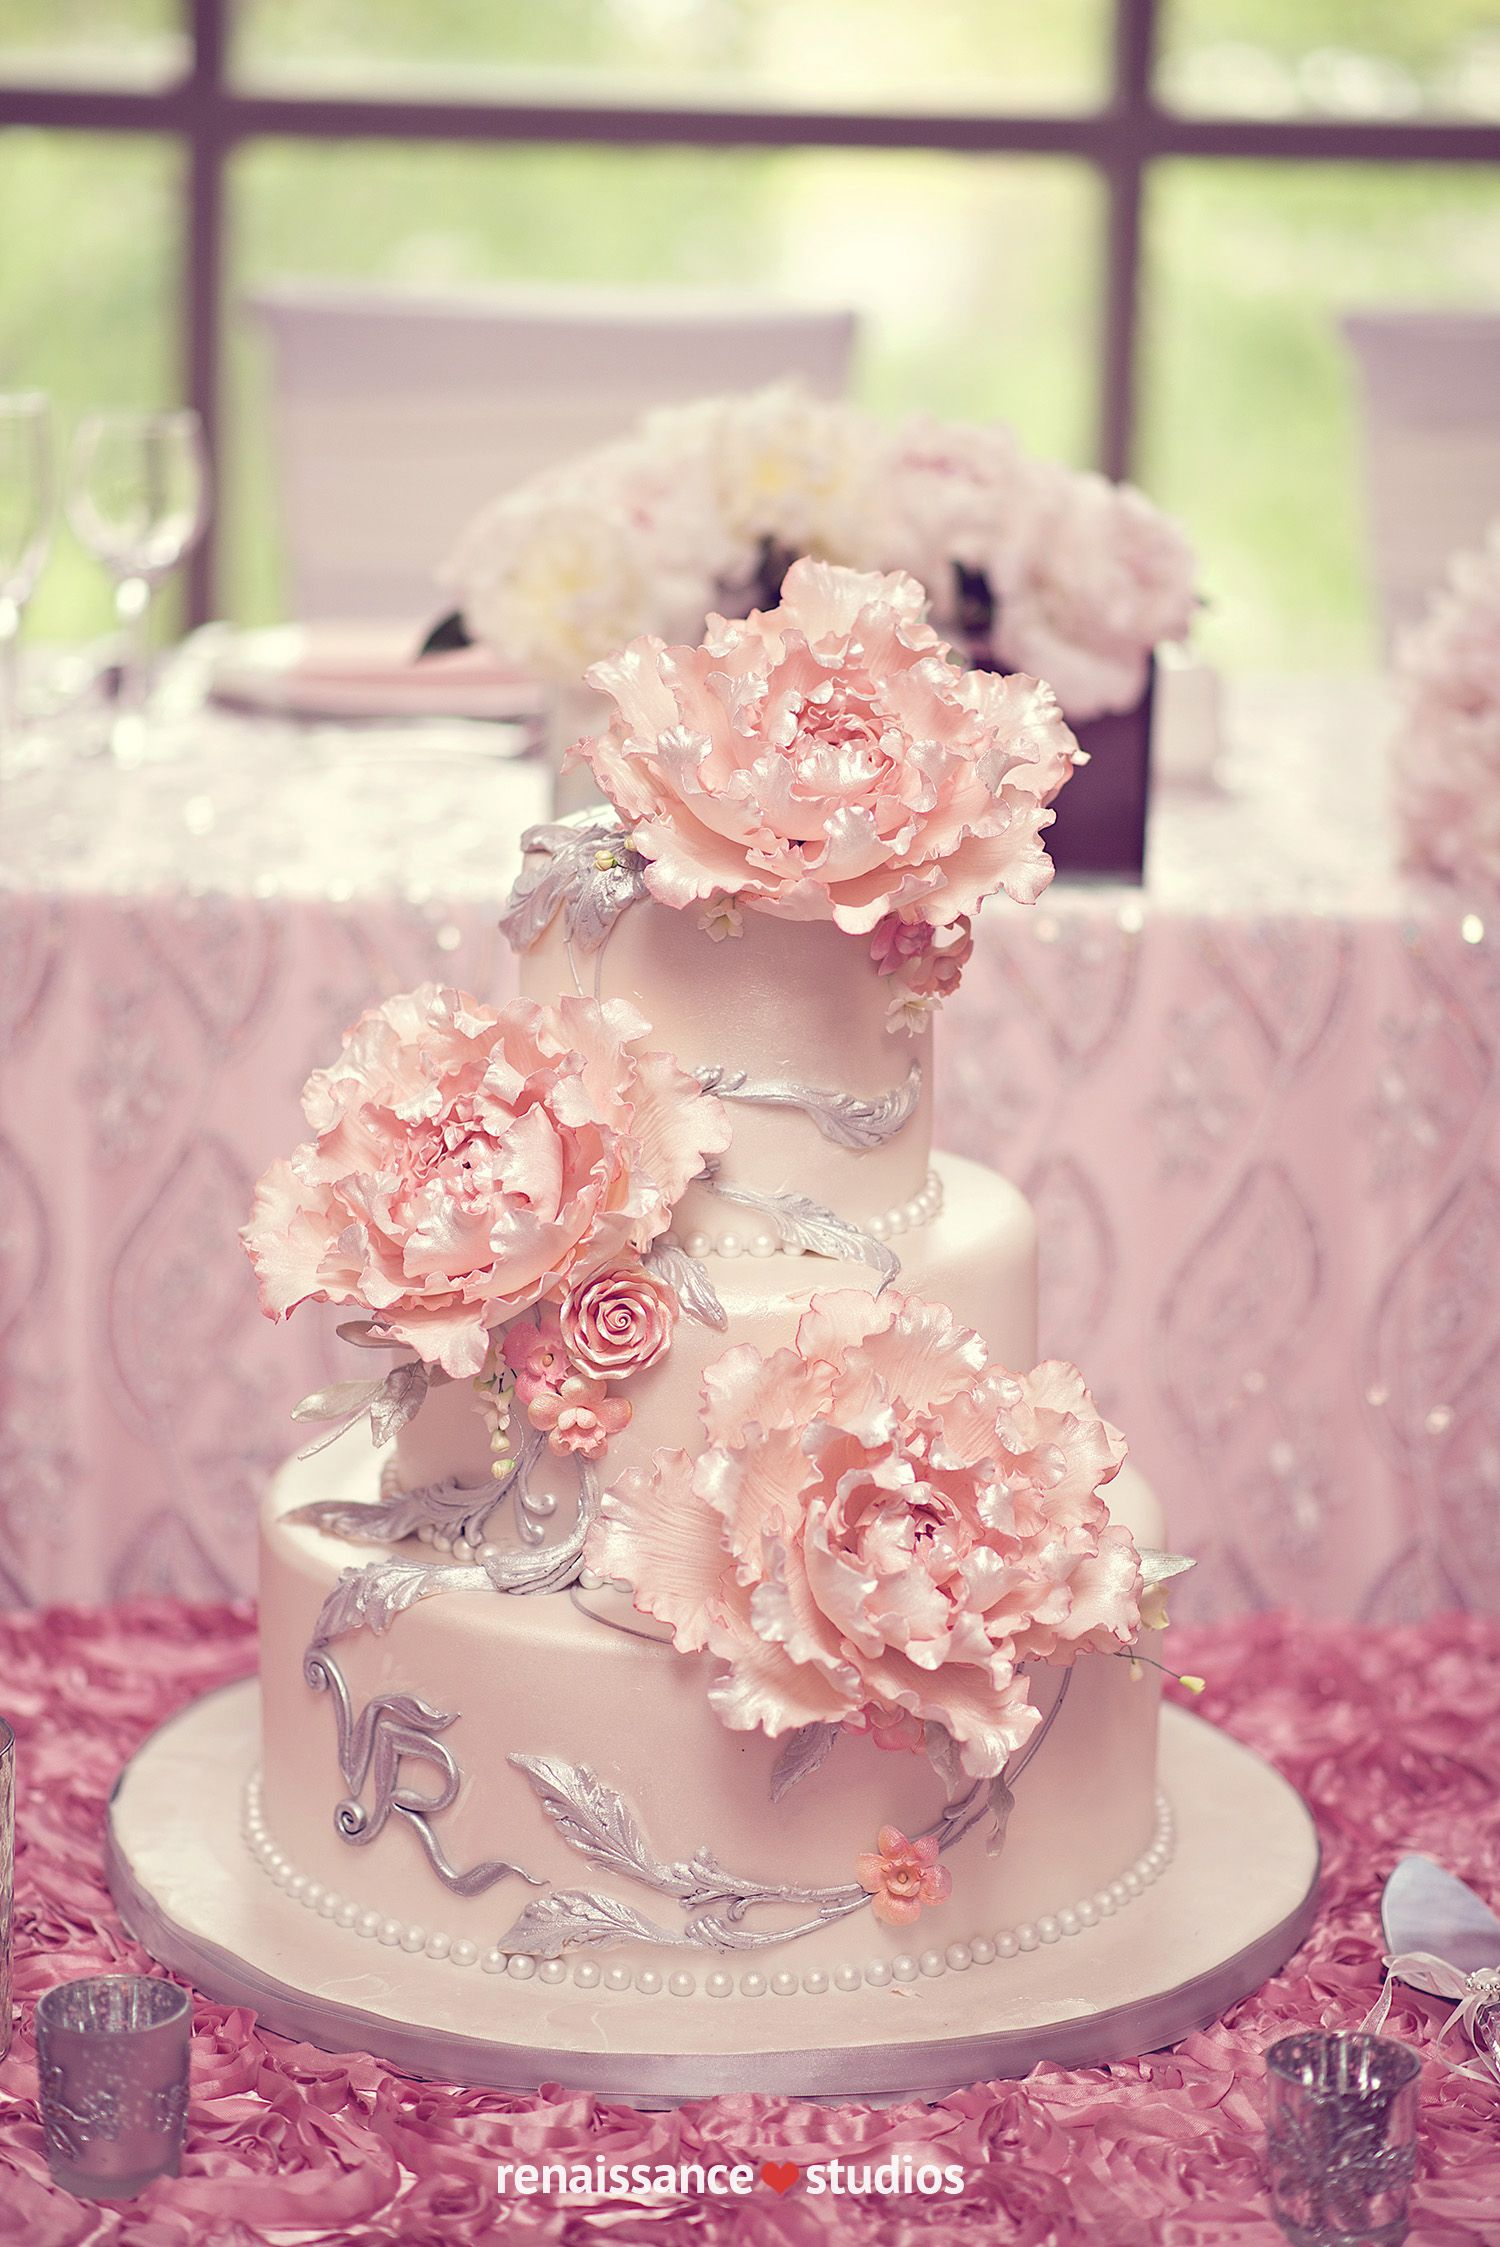 Gorgeous pink with silver details wedding cake! Renaissance Studios ...